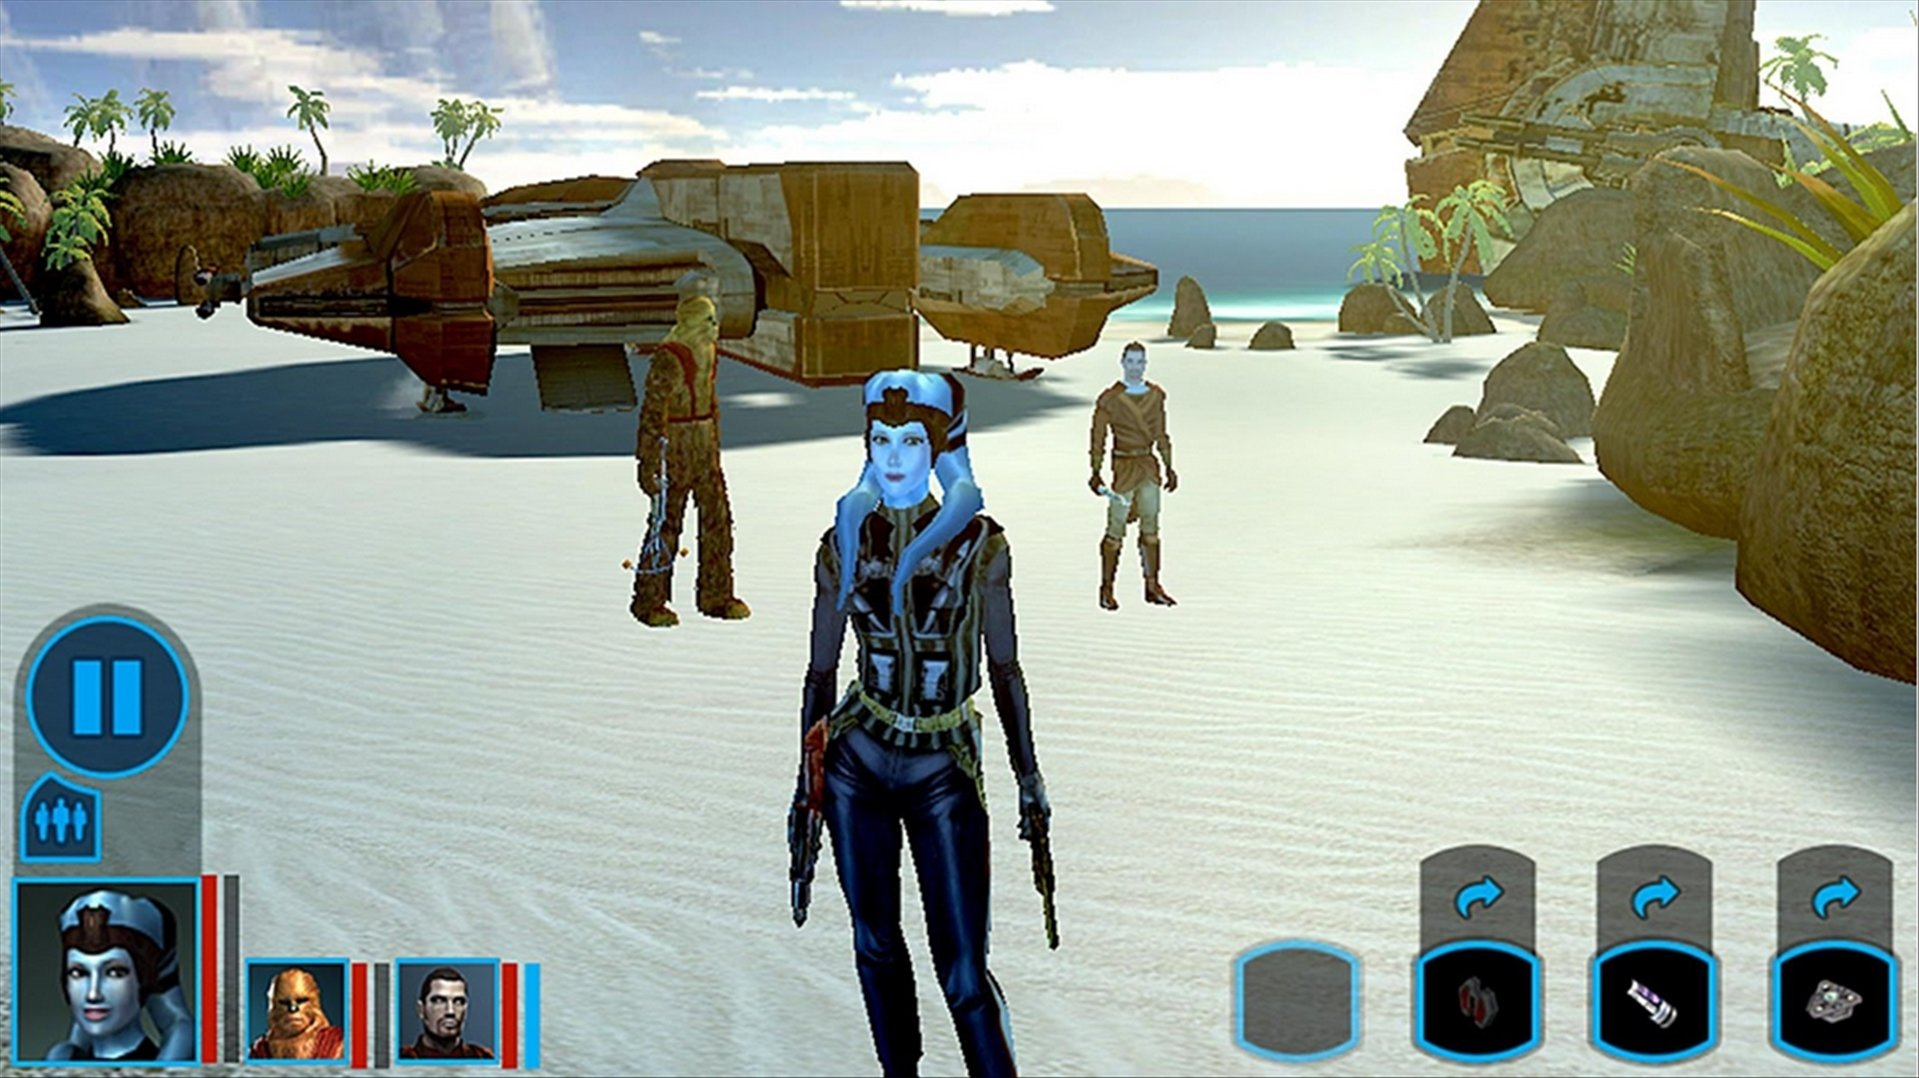 download star wars kotor knights of the old republic 1 0 6 android